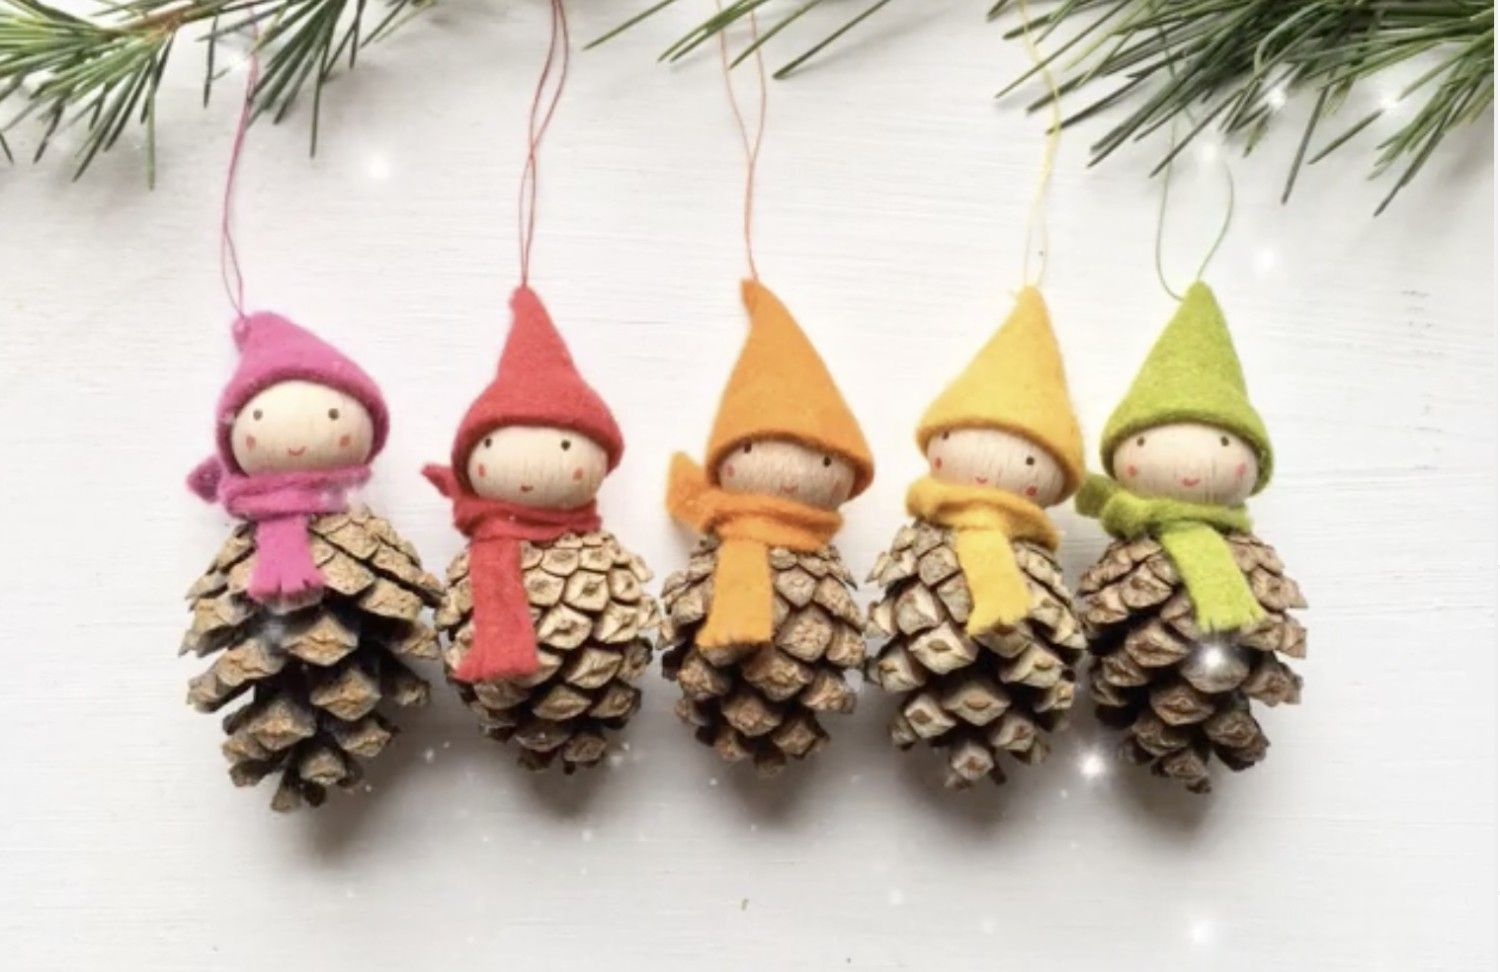 These Cute Gnome Ornaments Made Out Of Pine Cones Are A Fun Holiday Craft Pinecone Crafts Kids Fun Holiday Crafts Pine Cone Crafts